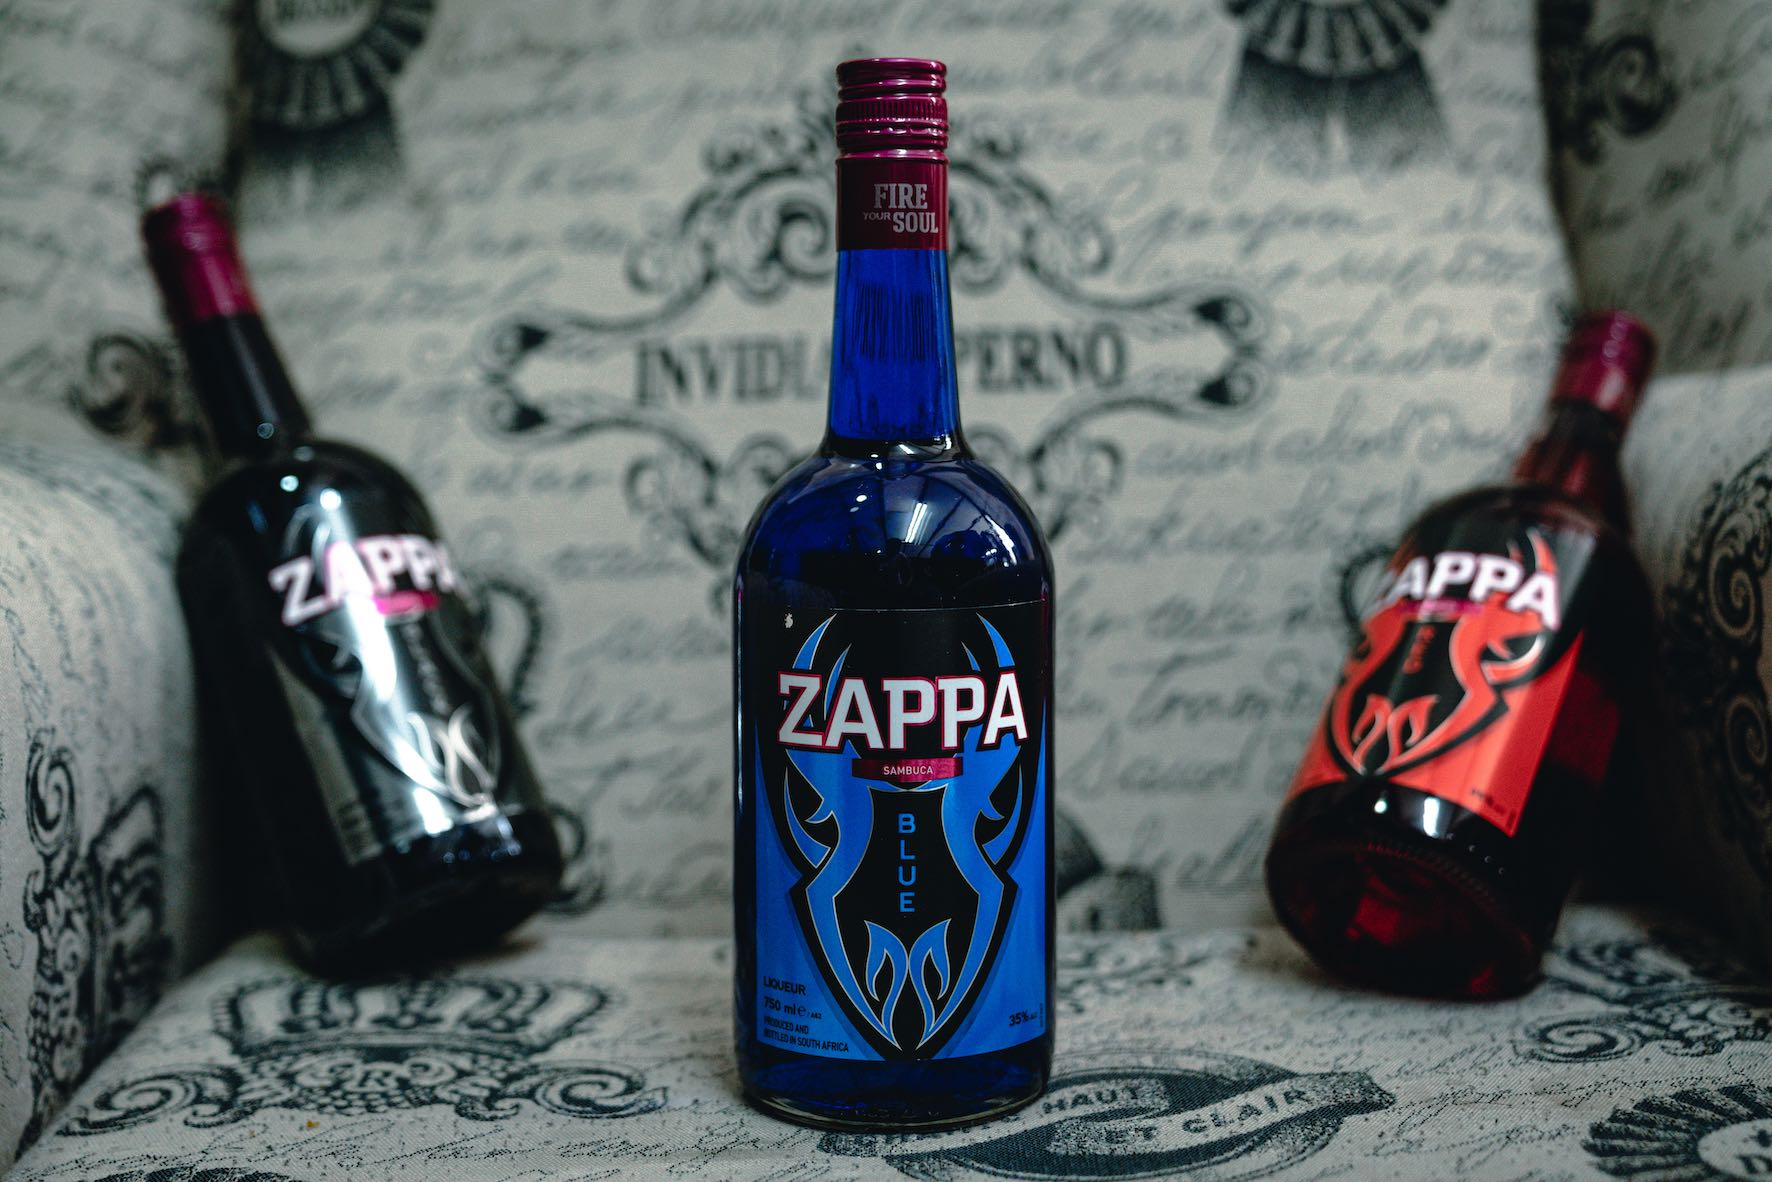 Our weekly tattoo artists features brought to you by Zappa Sambuca